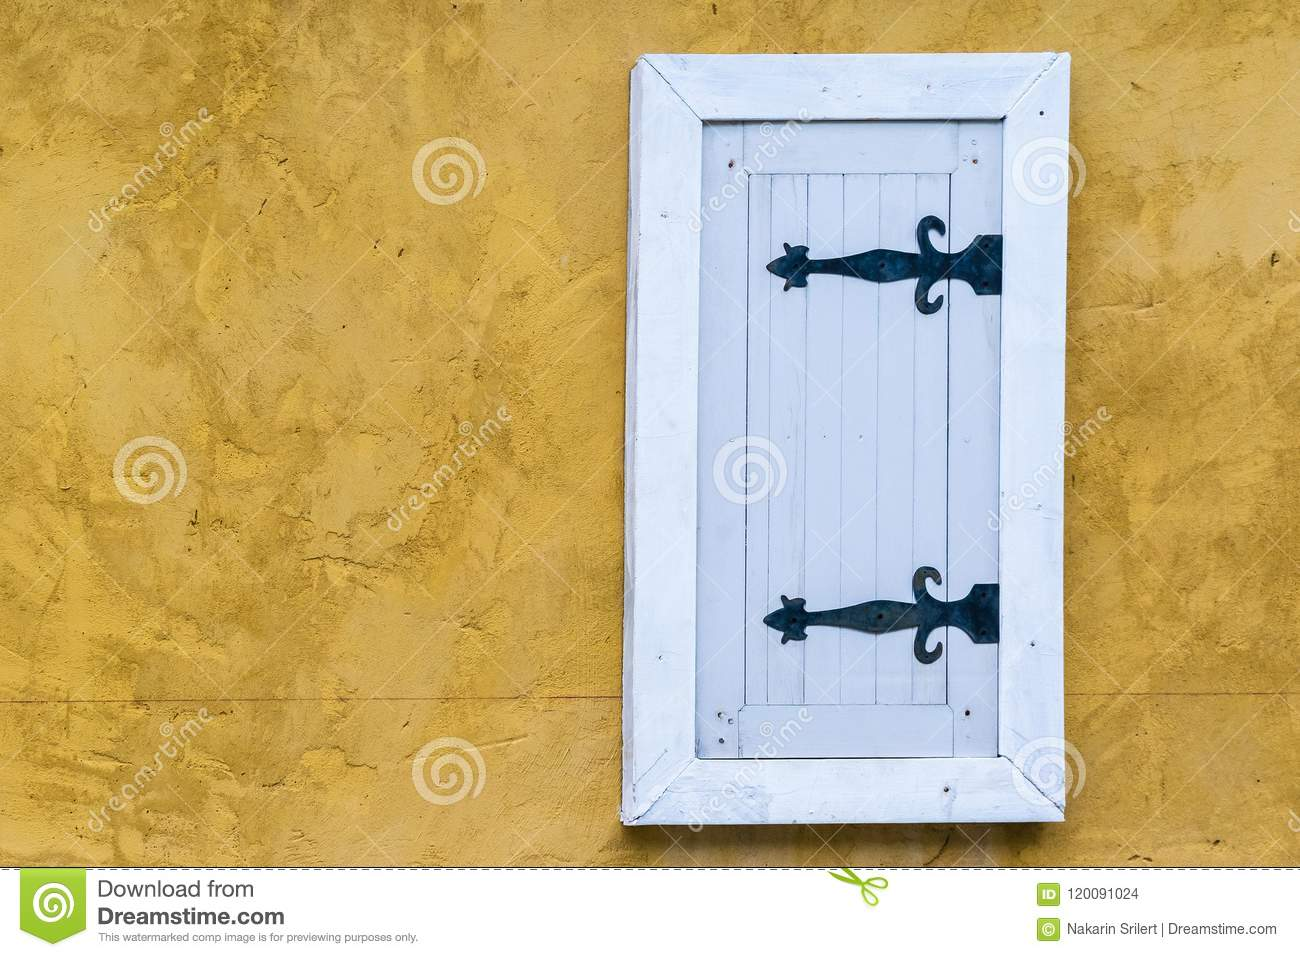 European-style Windows And Walls Beautiful. Stock Photo - Image of ...